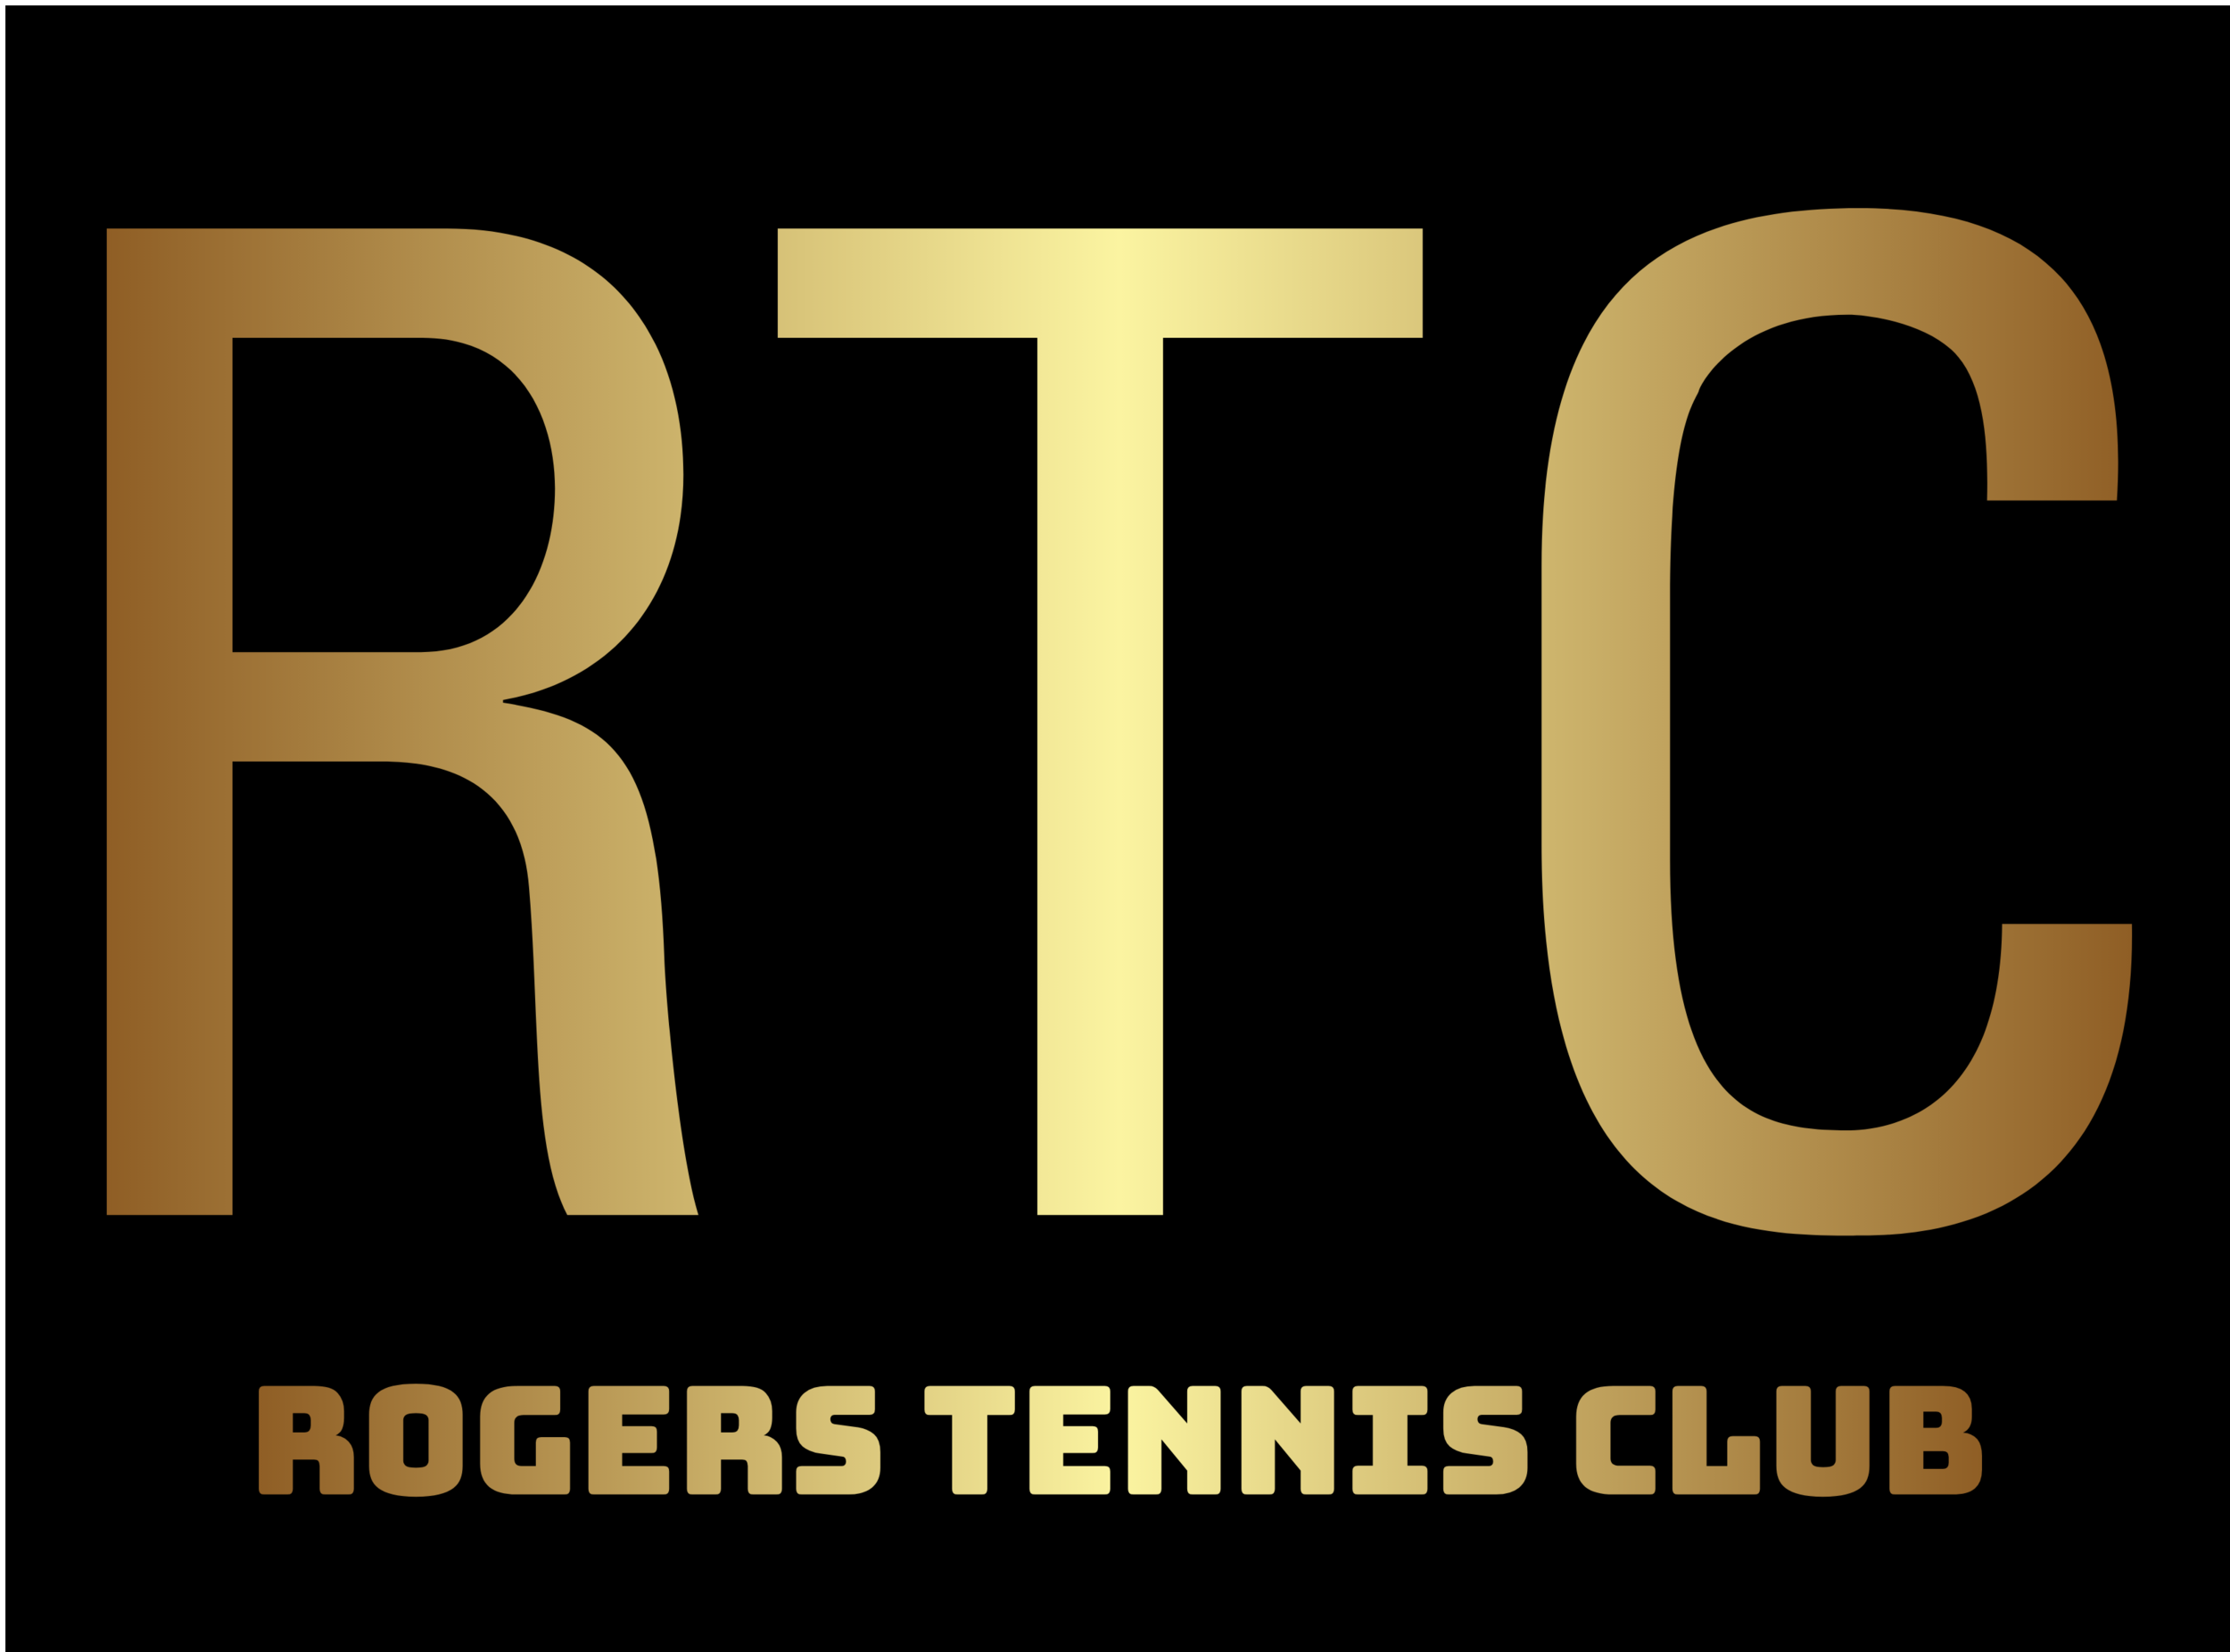 Picture of Rogers Tennis Club logo